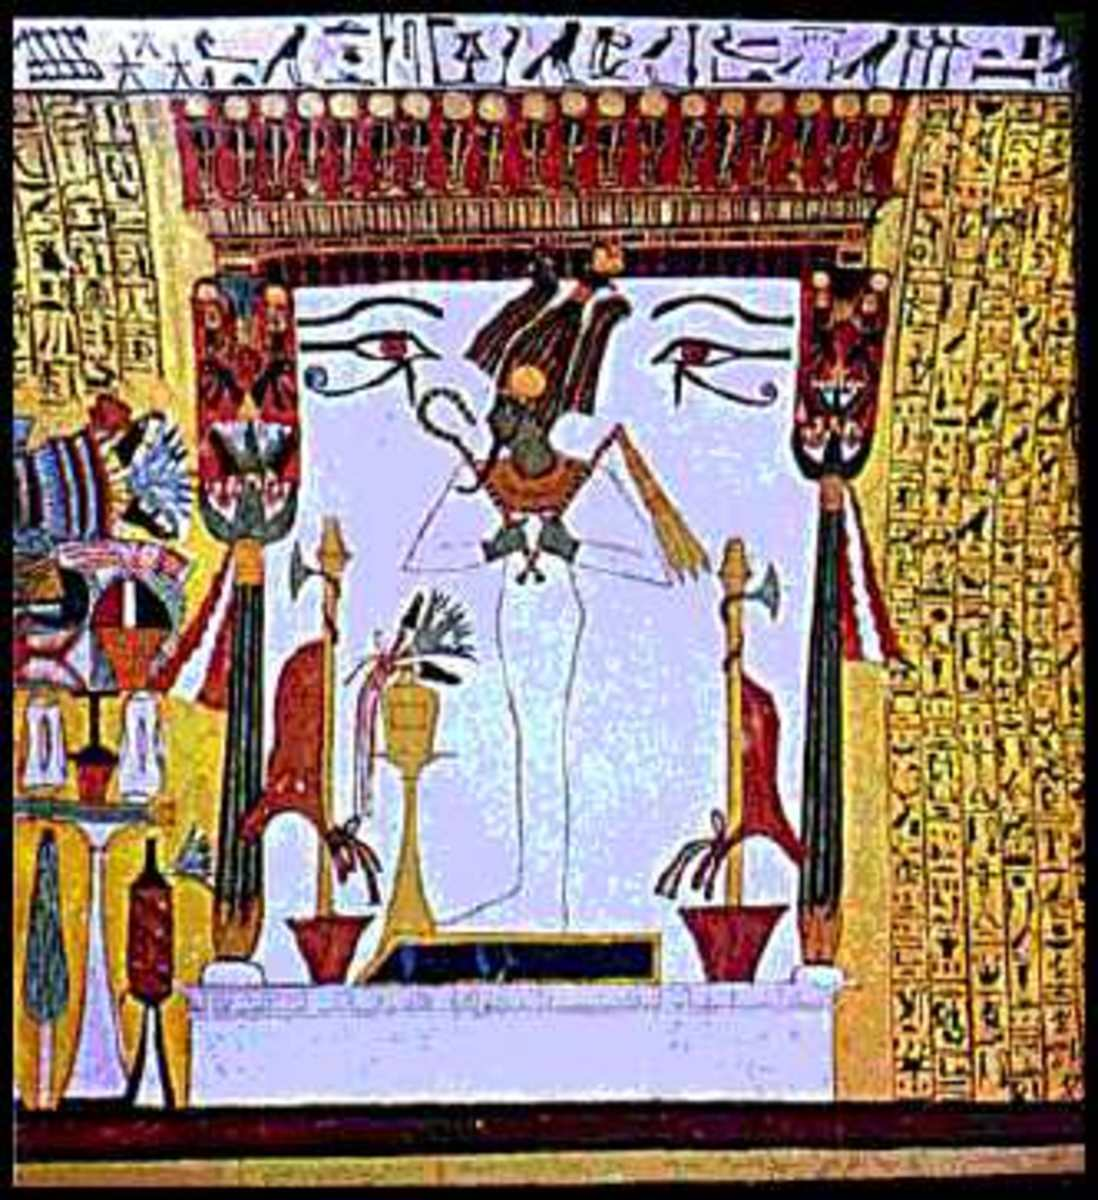 Osiris, God of the Dead, was represented by the stars of the modern-day constellation Orion.